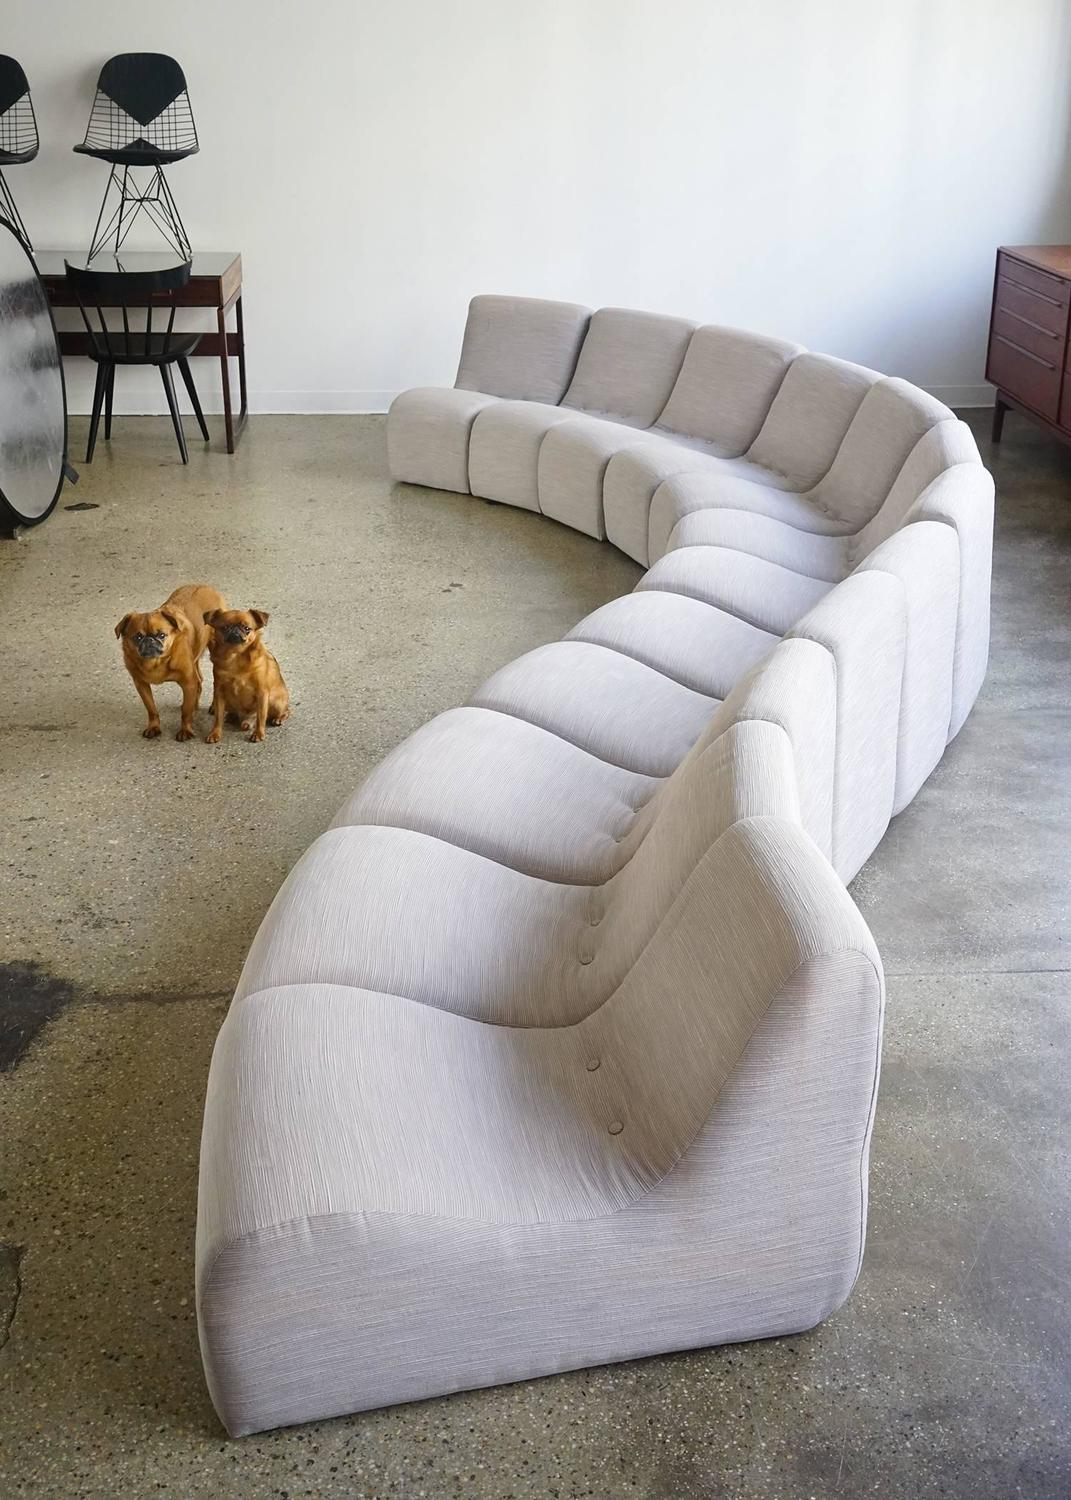 Serpentine sectional by milo baughman for sale at 1stdibs for High end sofas for sale